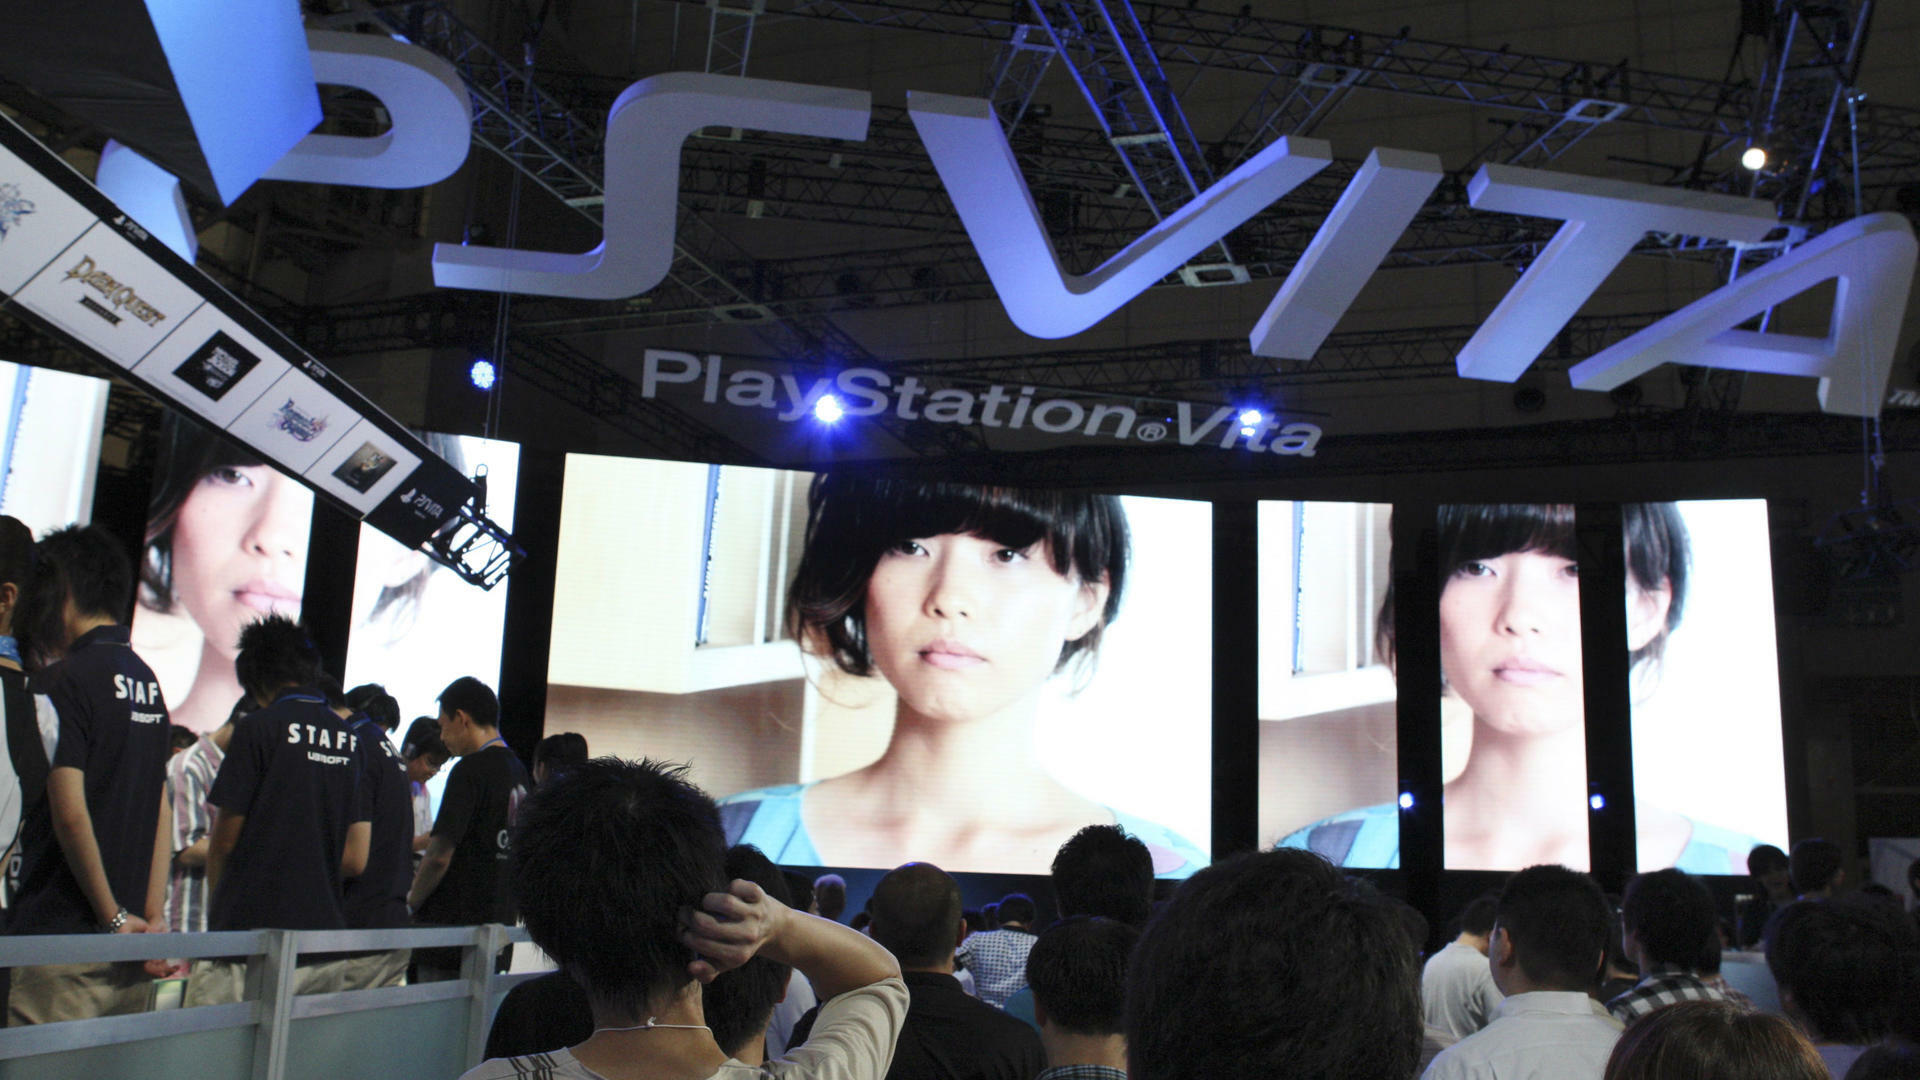 visitors crowd at the booth of Sony Computer Entertainment for a new portable machine, PlayStation Vita, at the Tokyo Game Show Quelle: dapd